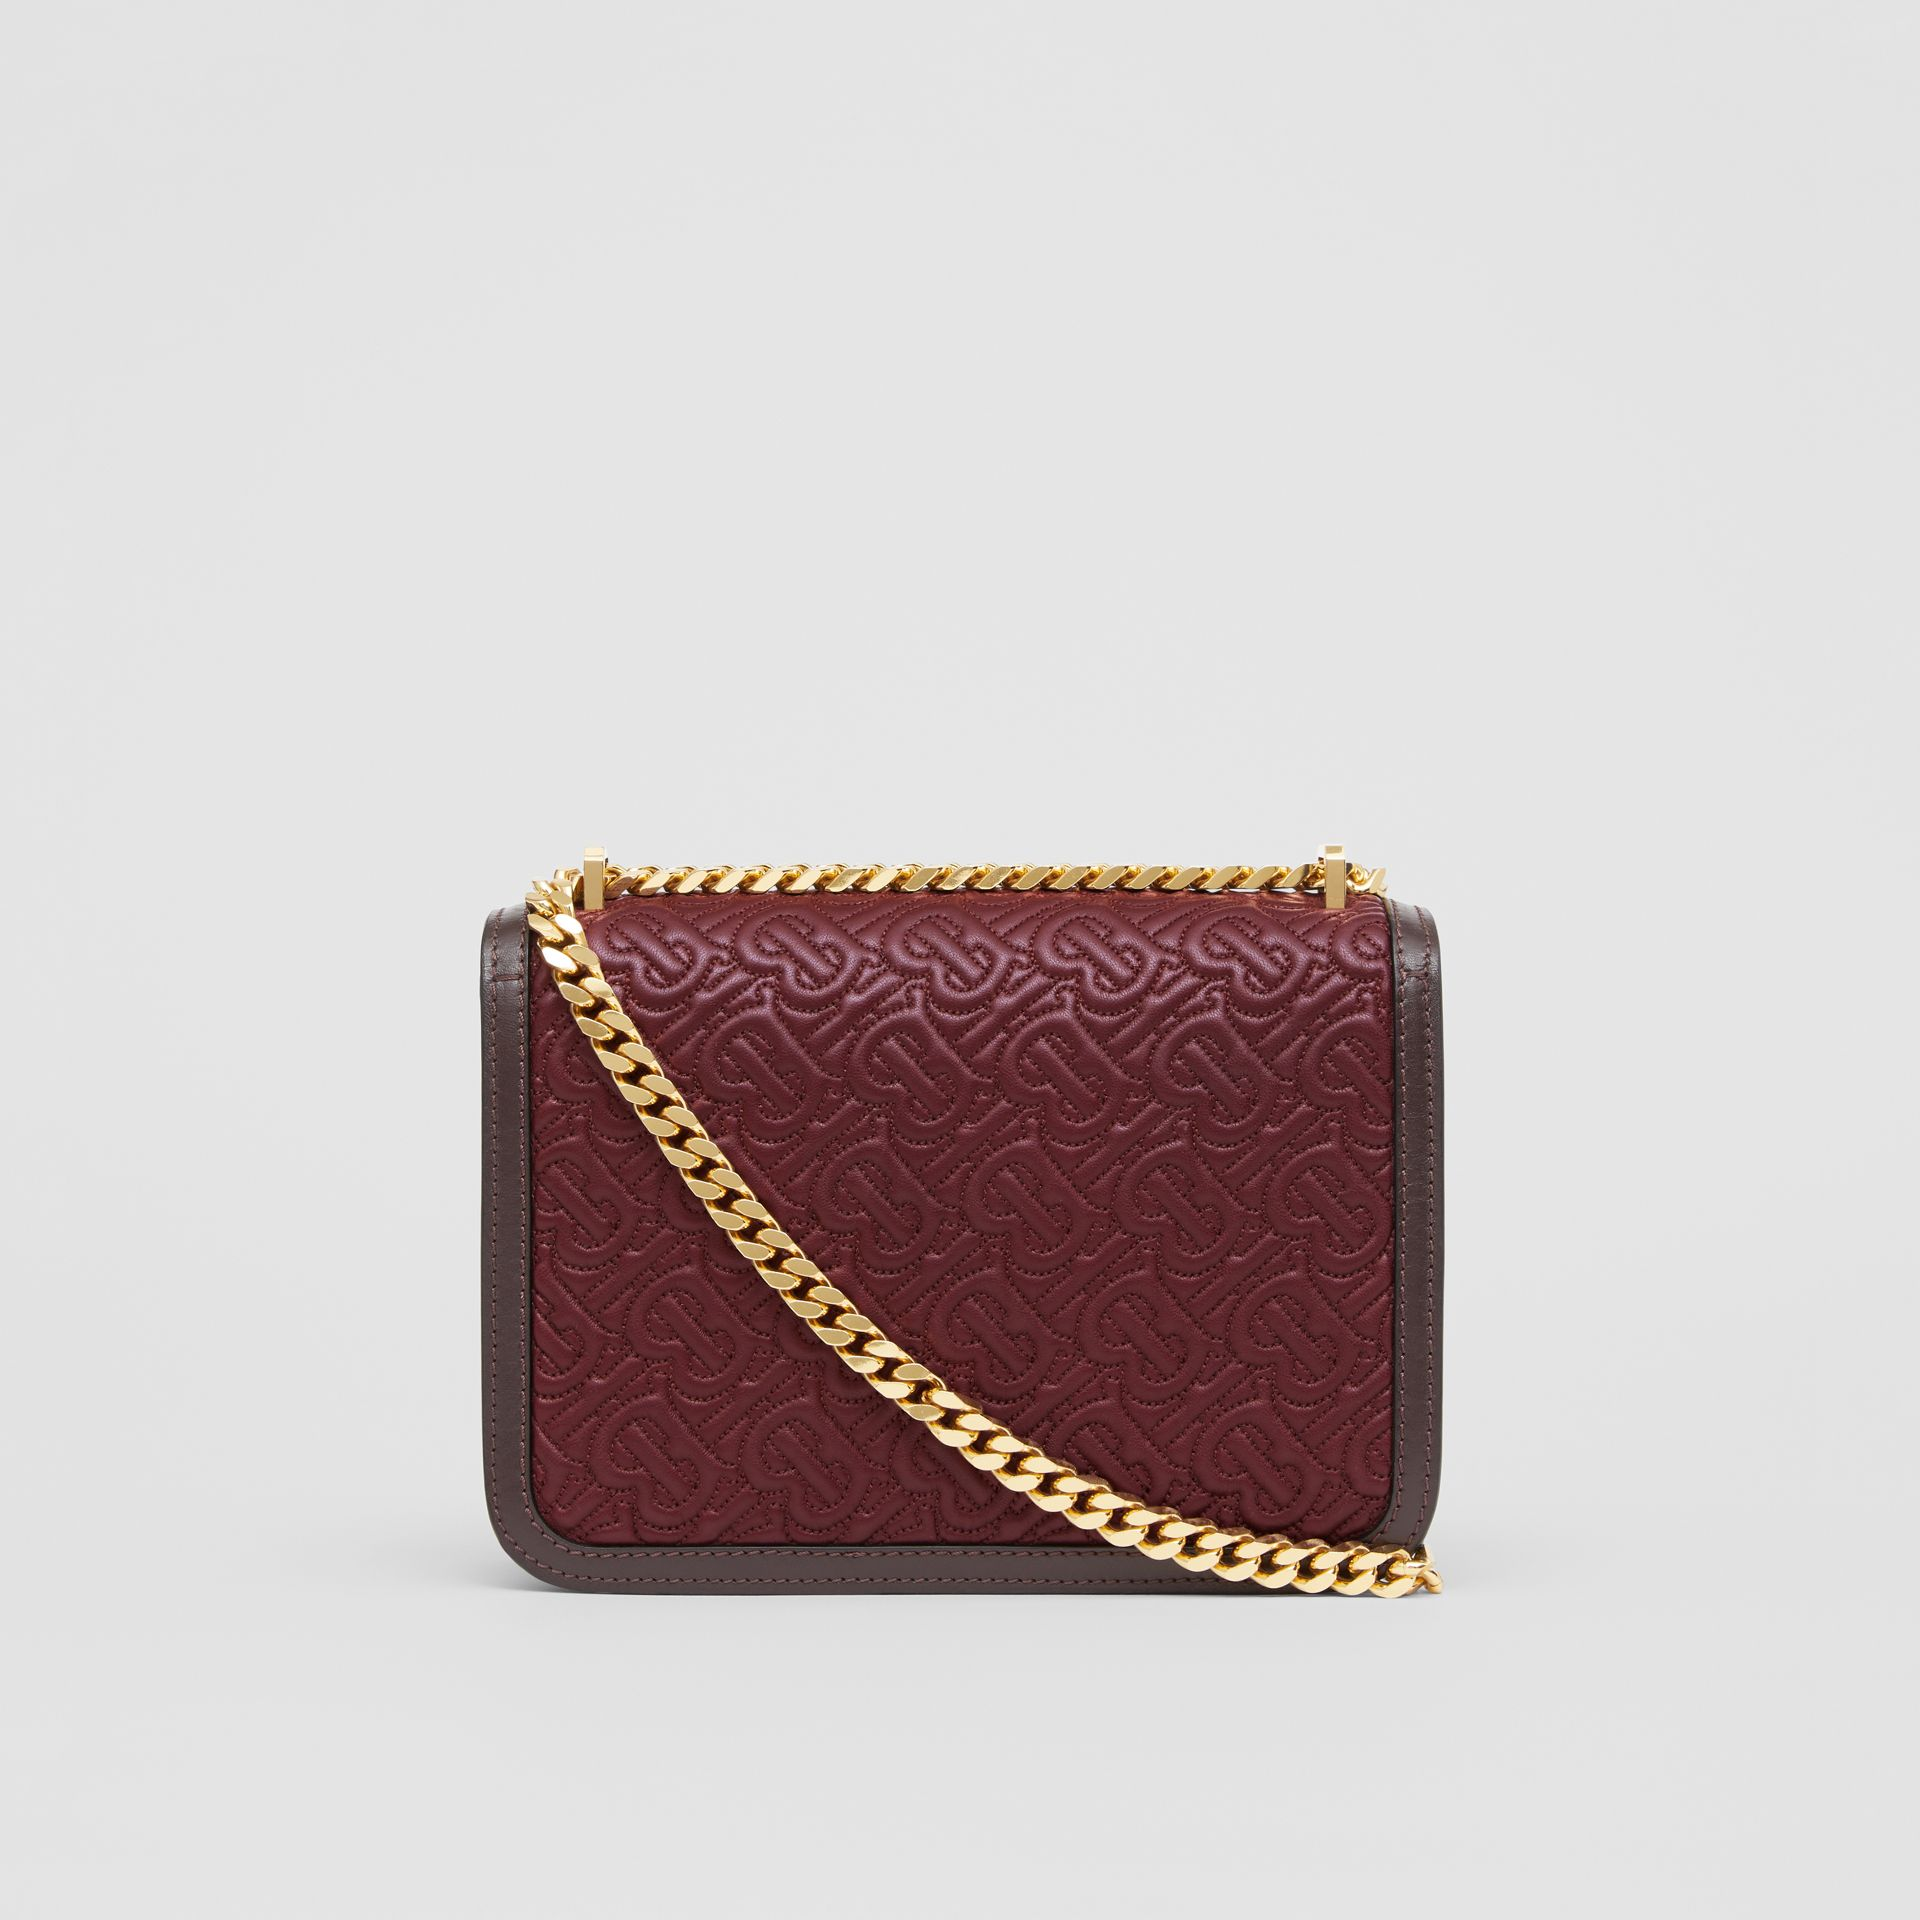 Small Quilted Monogram Lambskin TB Bag in Oxblood - Women | Burberry - gallery image 7